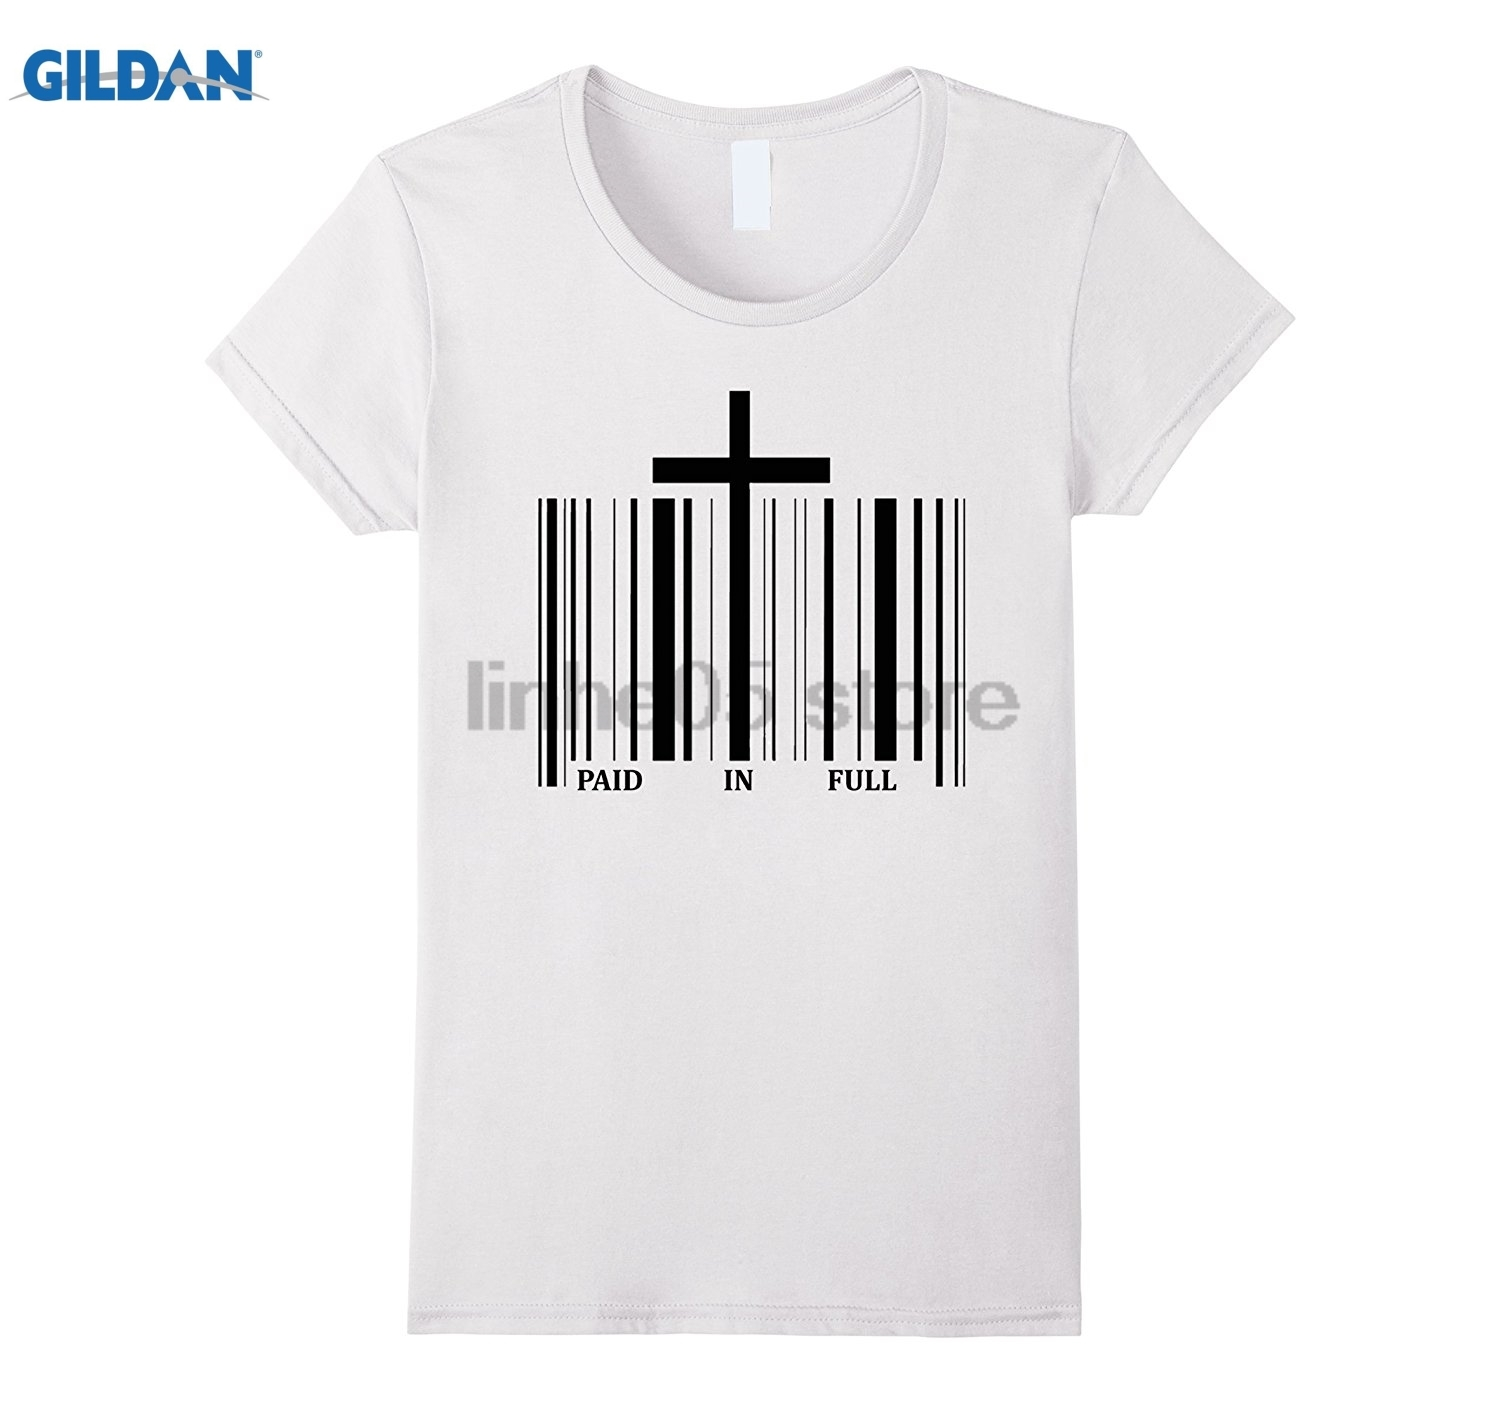 GILDAN UPC bar code Christian cross shirt - PAID IN FULL Womens T-shirt ...